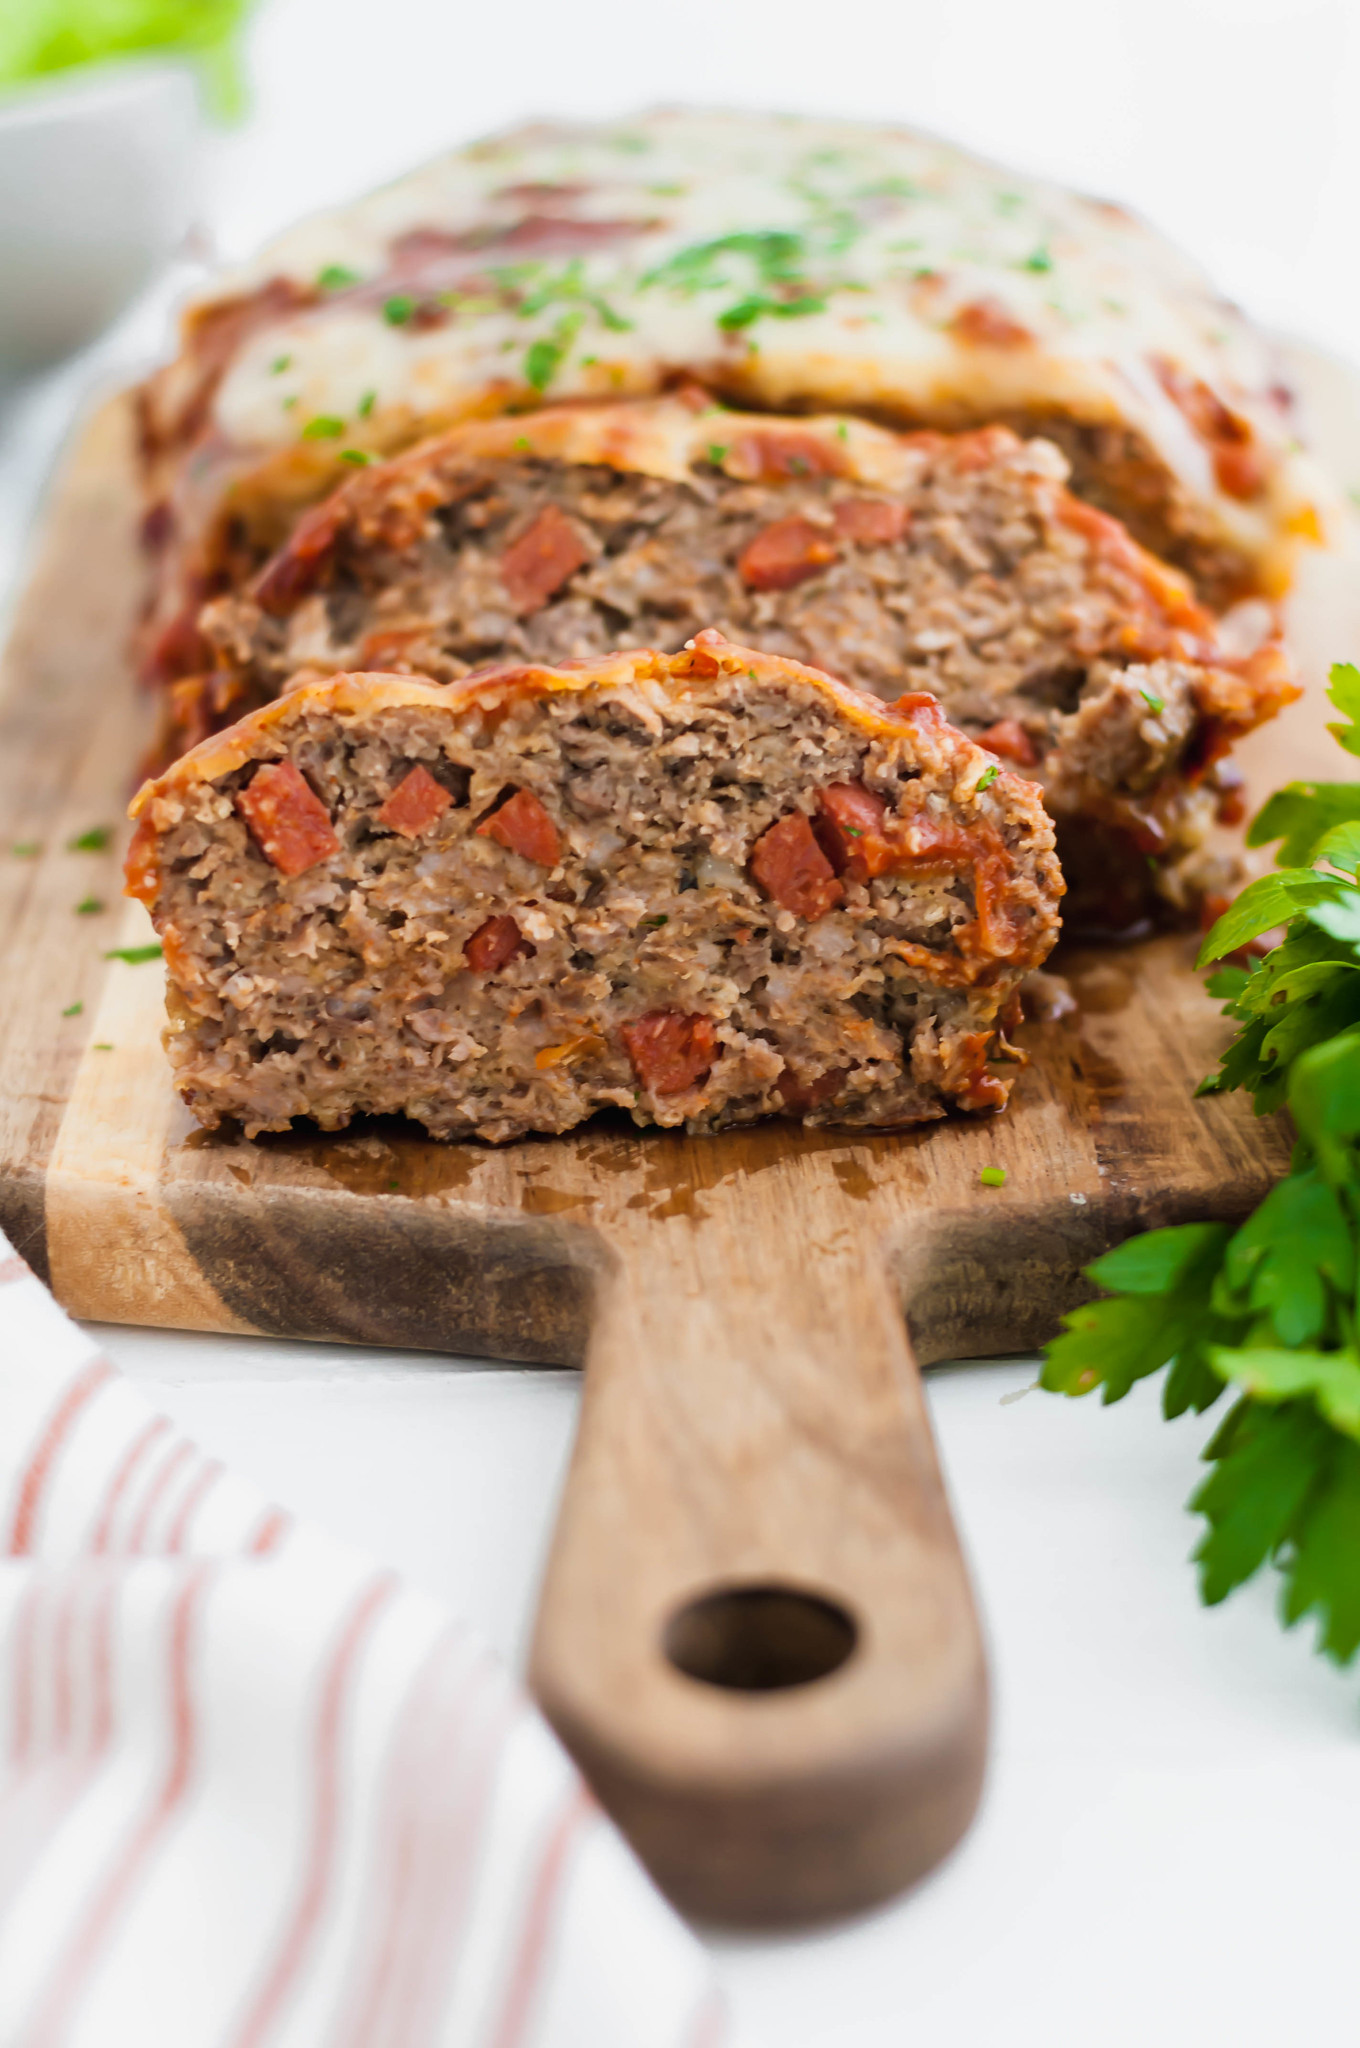 Two dinnertime favorite collide with this Pizza Meatloaf. Pizza ingredients throughout the meatloaf and on top puts that pizza flavor over the top.